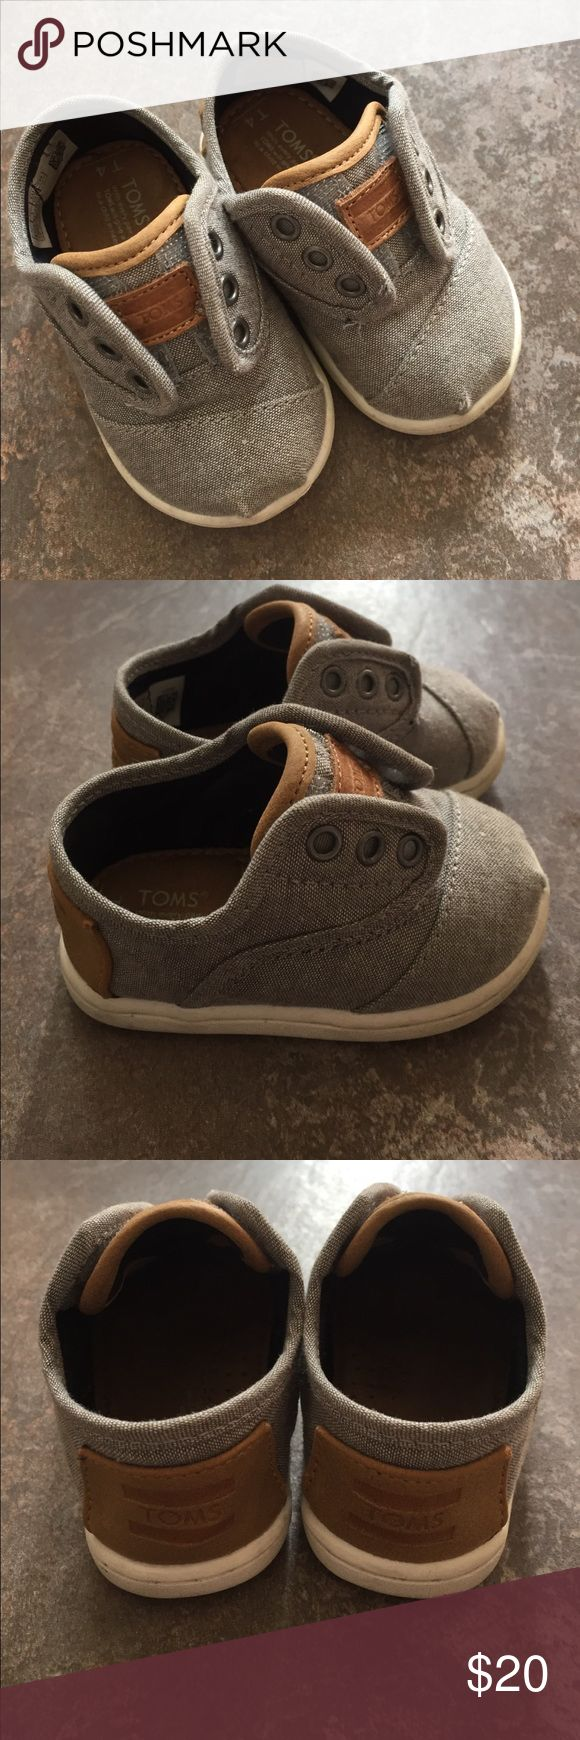 Tiny Toms Paseos - Chambray Gray and Brown Gently used, size 4 Tiny Toms Paseos Toms Shoes Baby & Walker